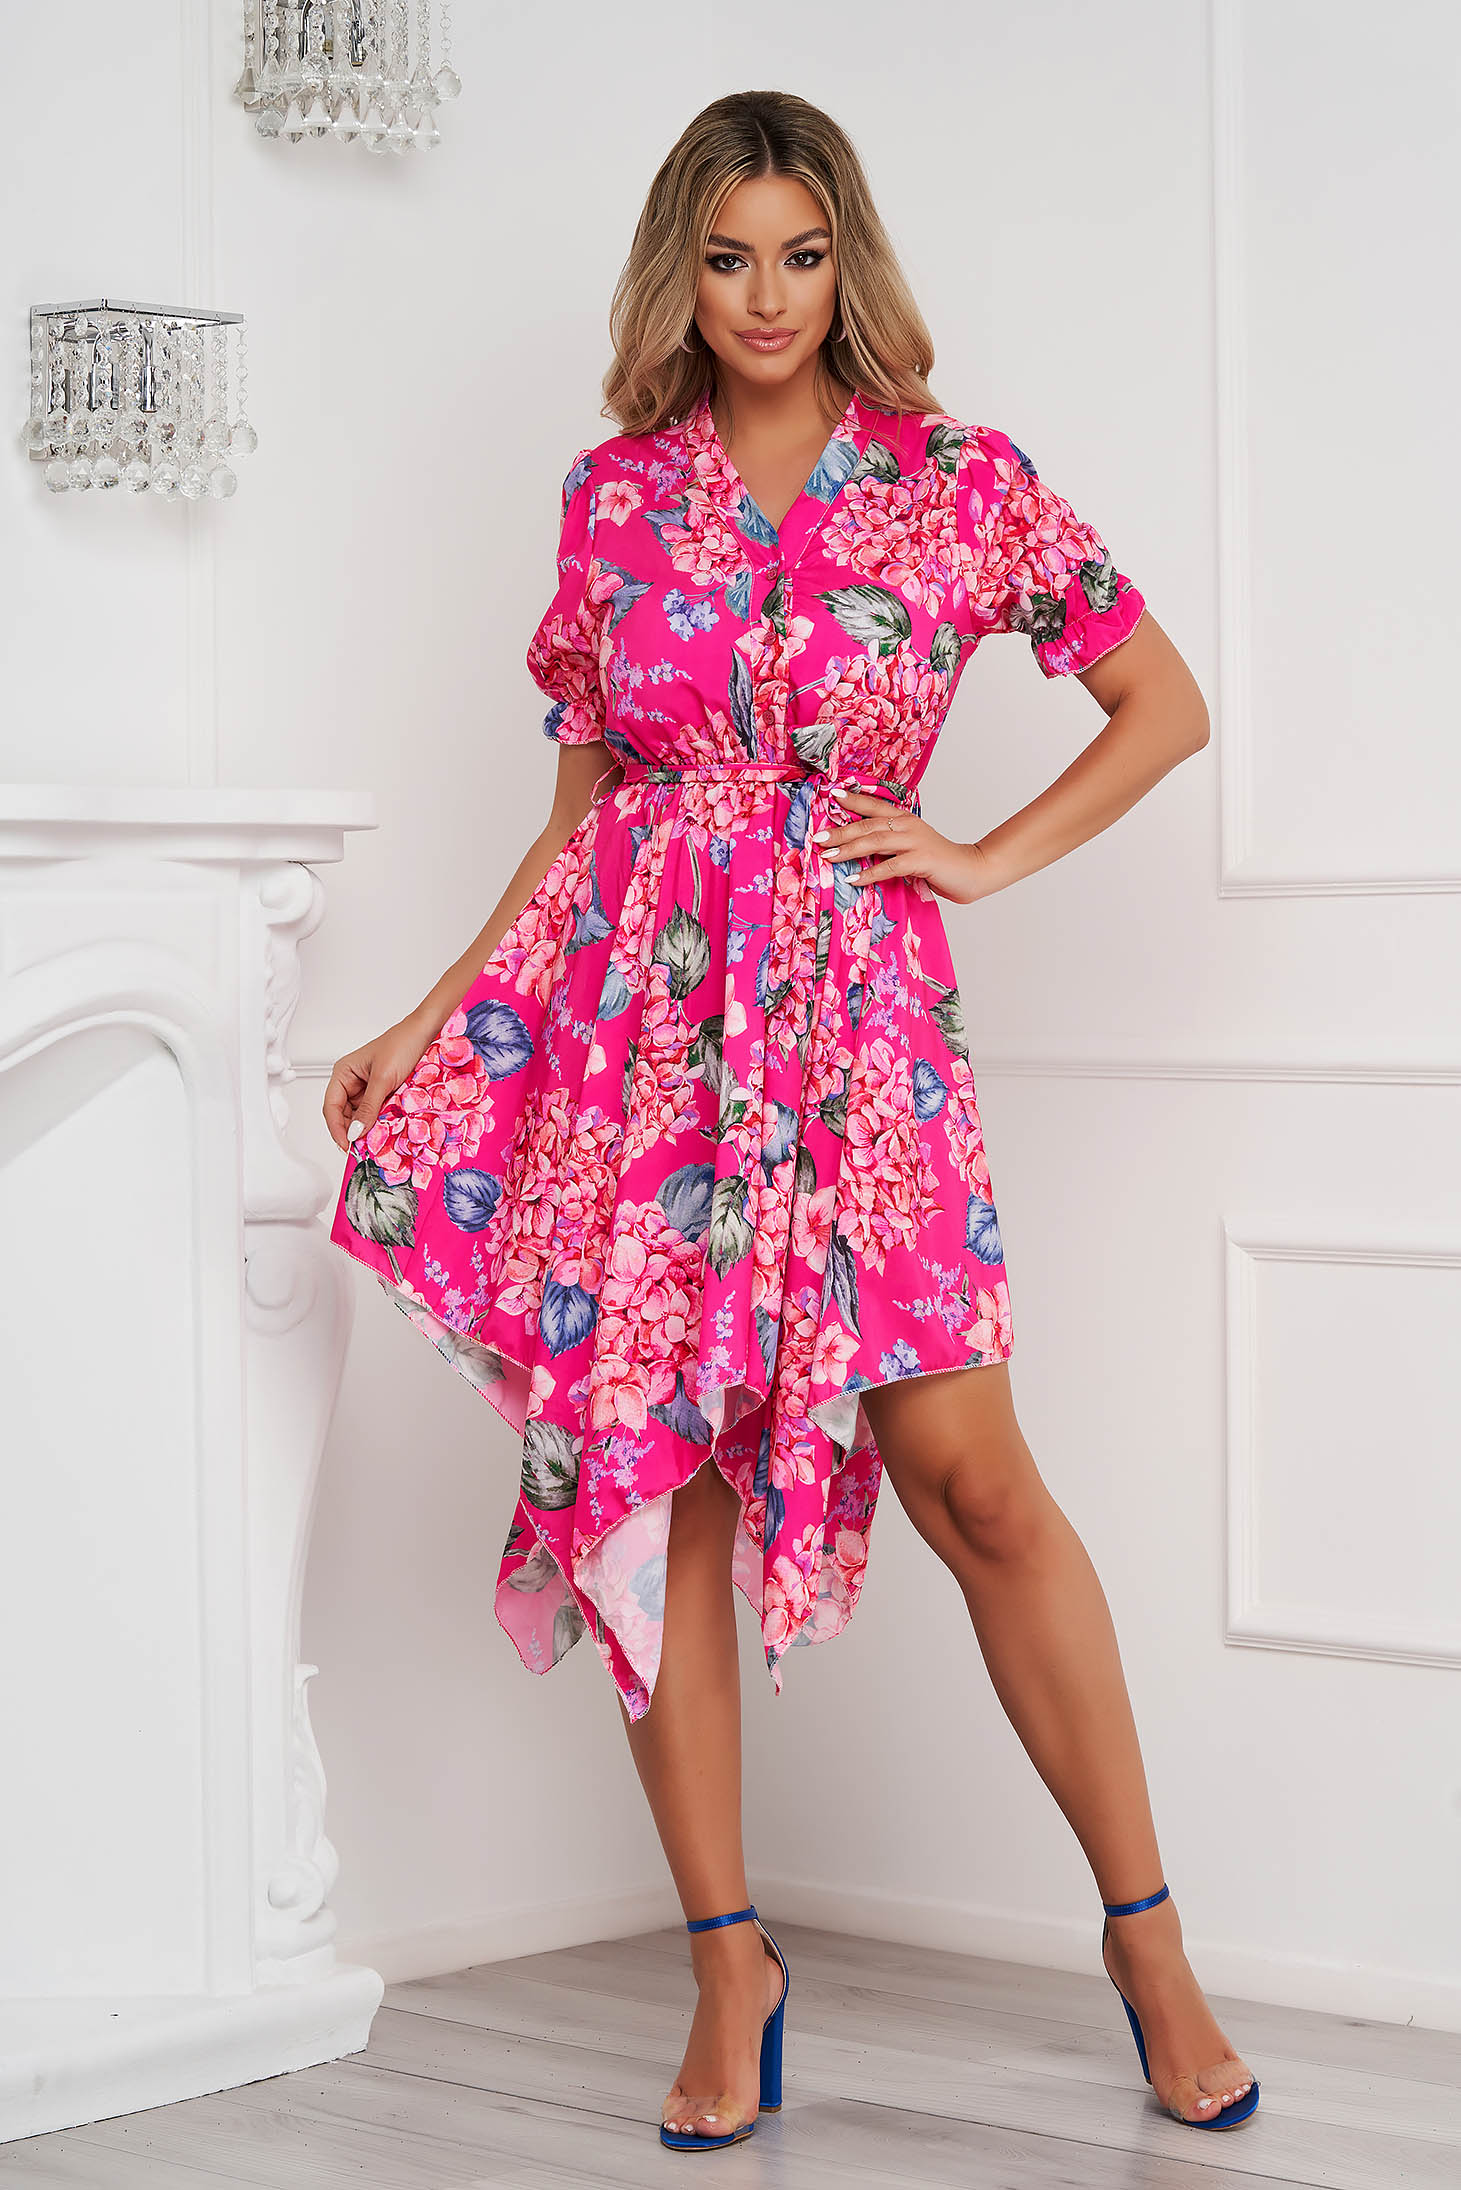 Dress asymmetrical cloche with elastic waist soft fabric with floral print